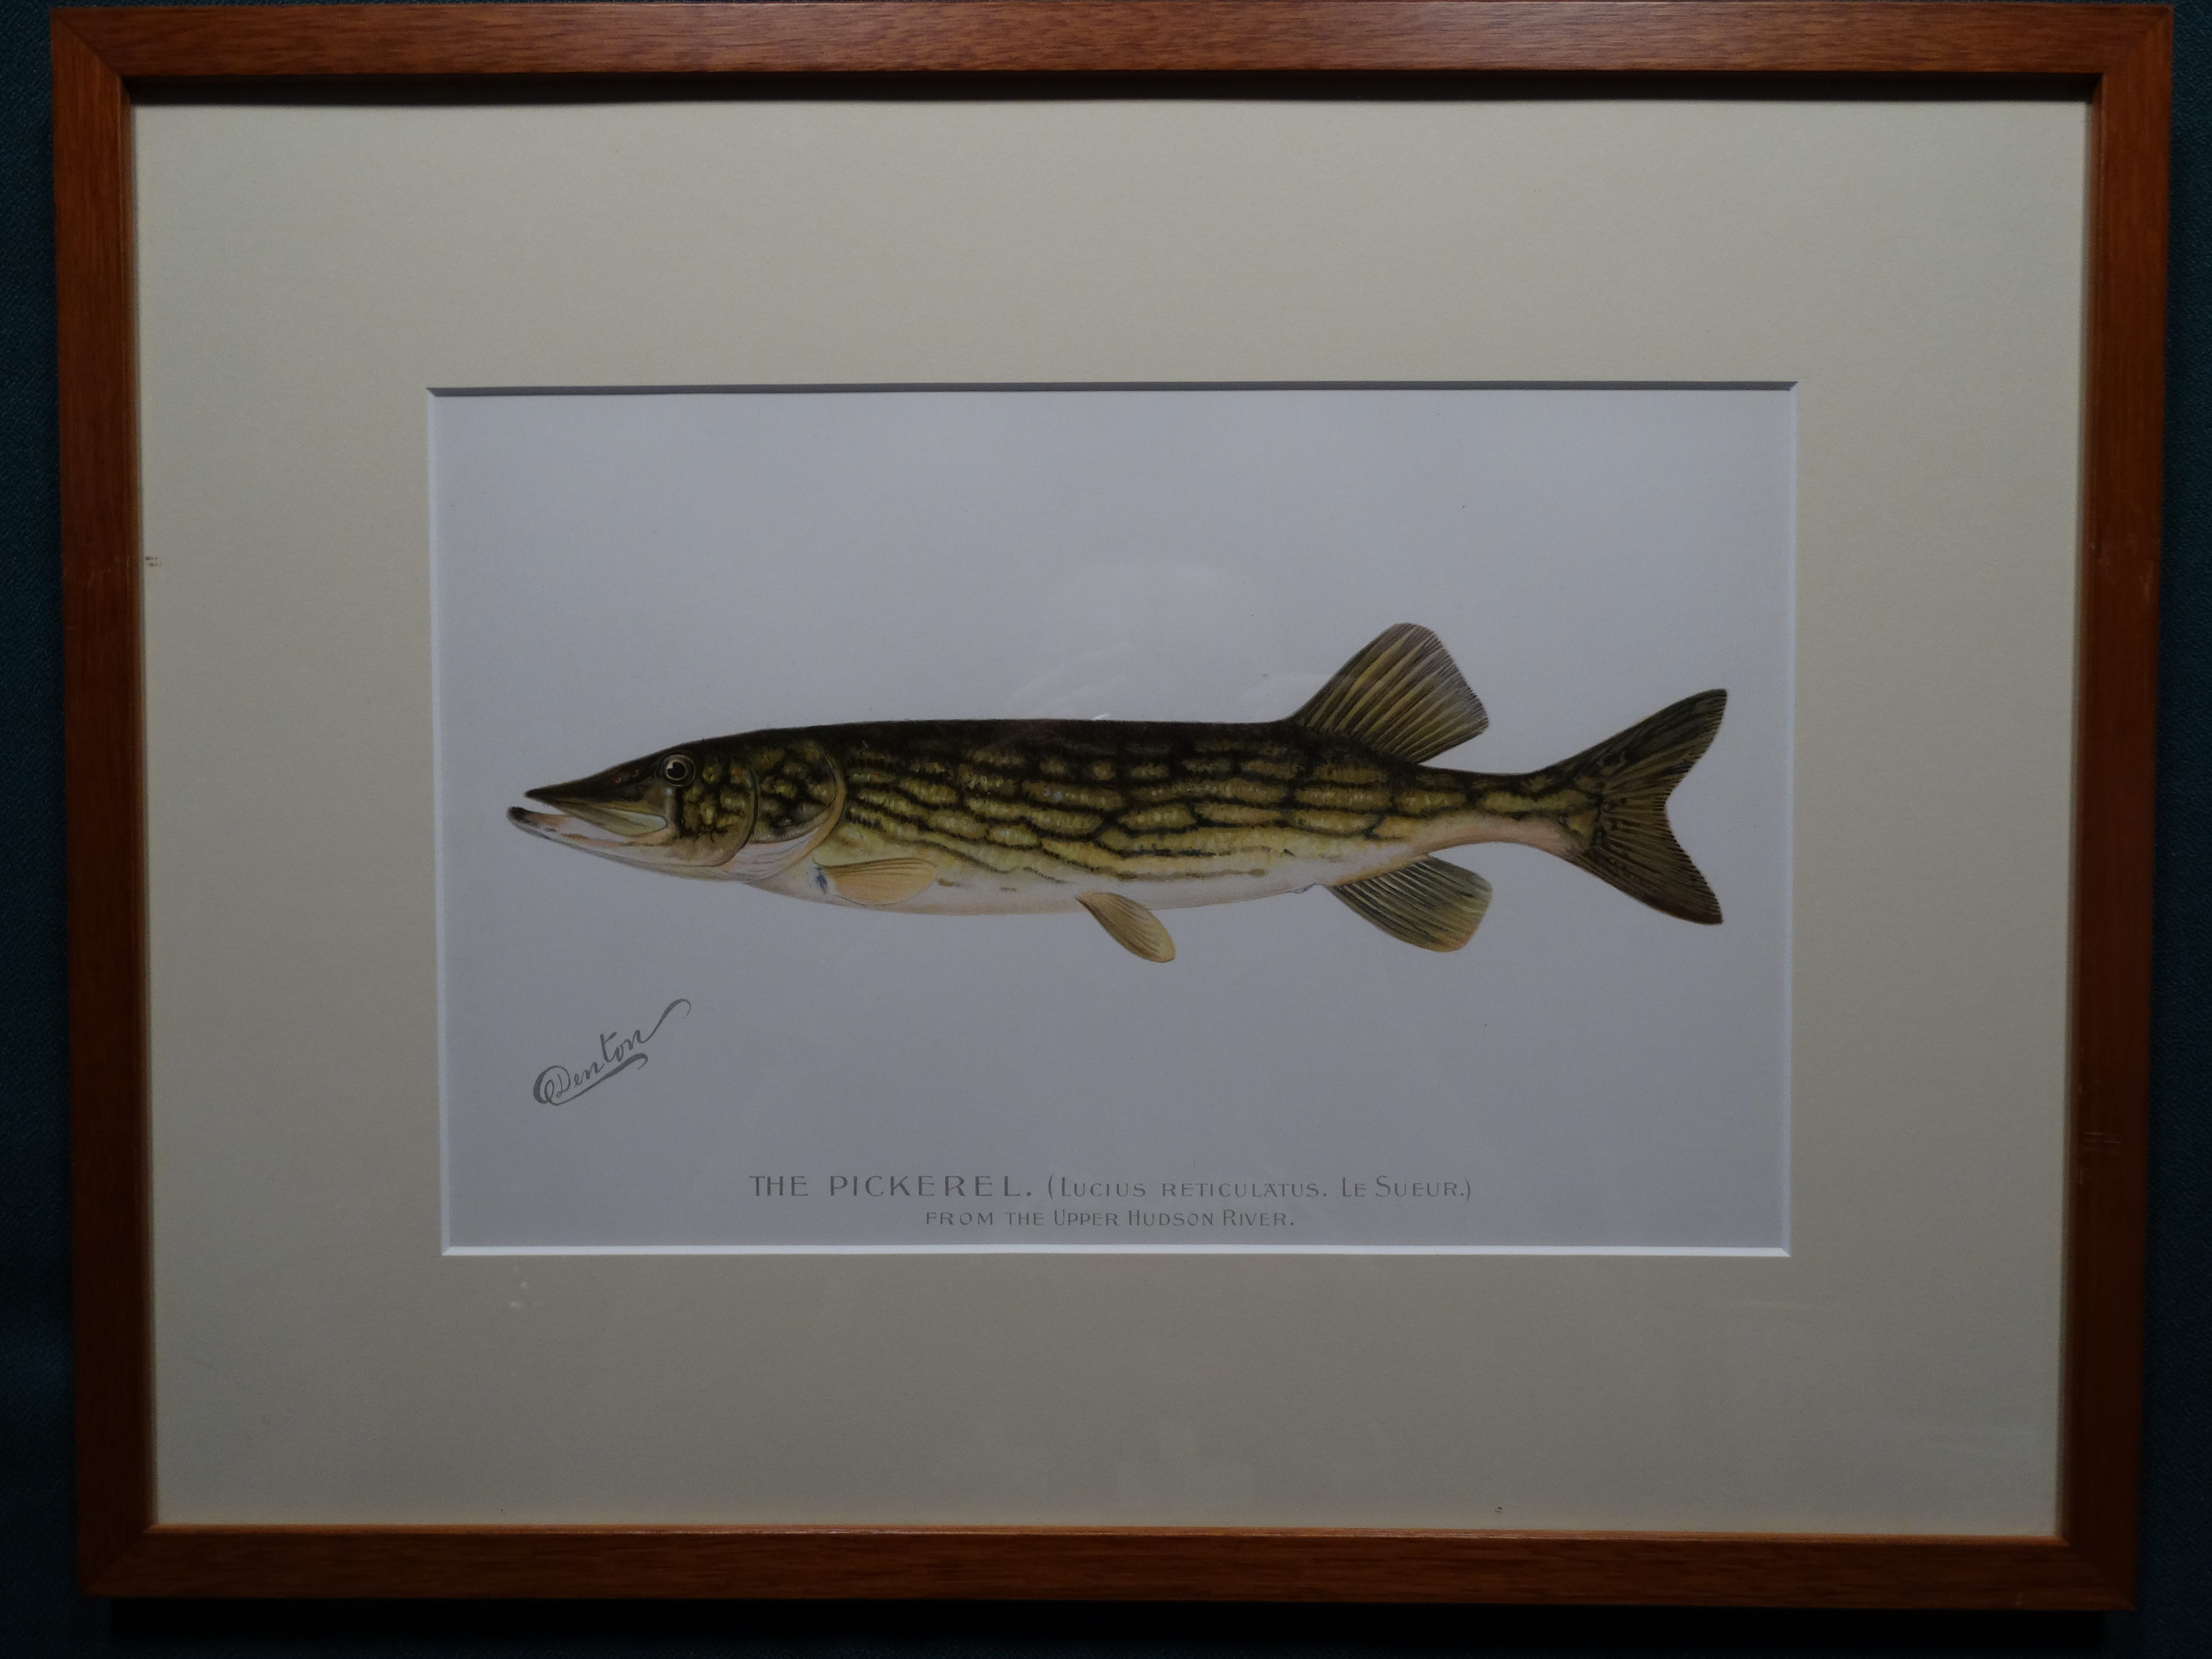 The Pickerel by Denton Framed $115. with free US shipping